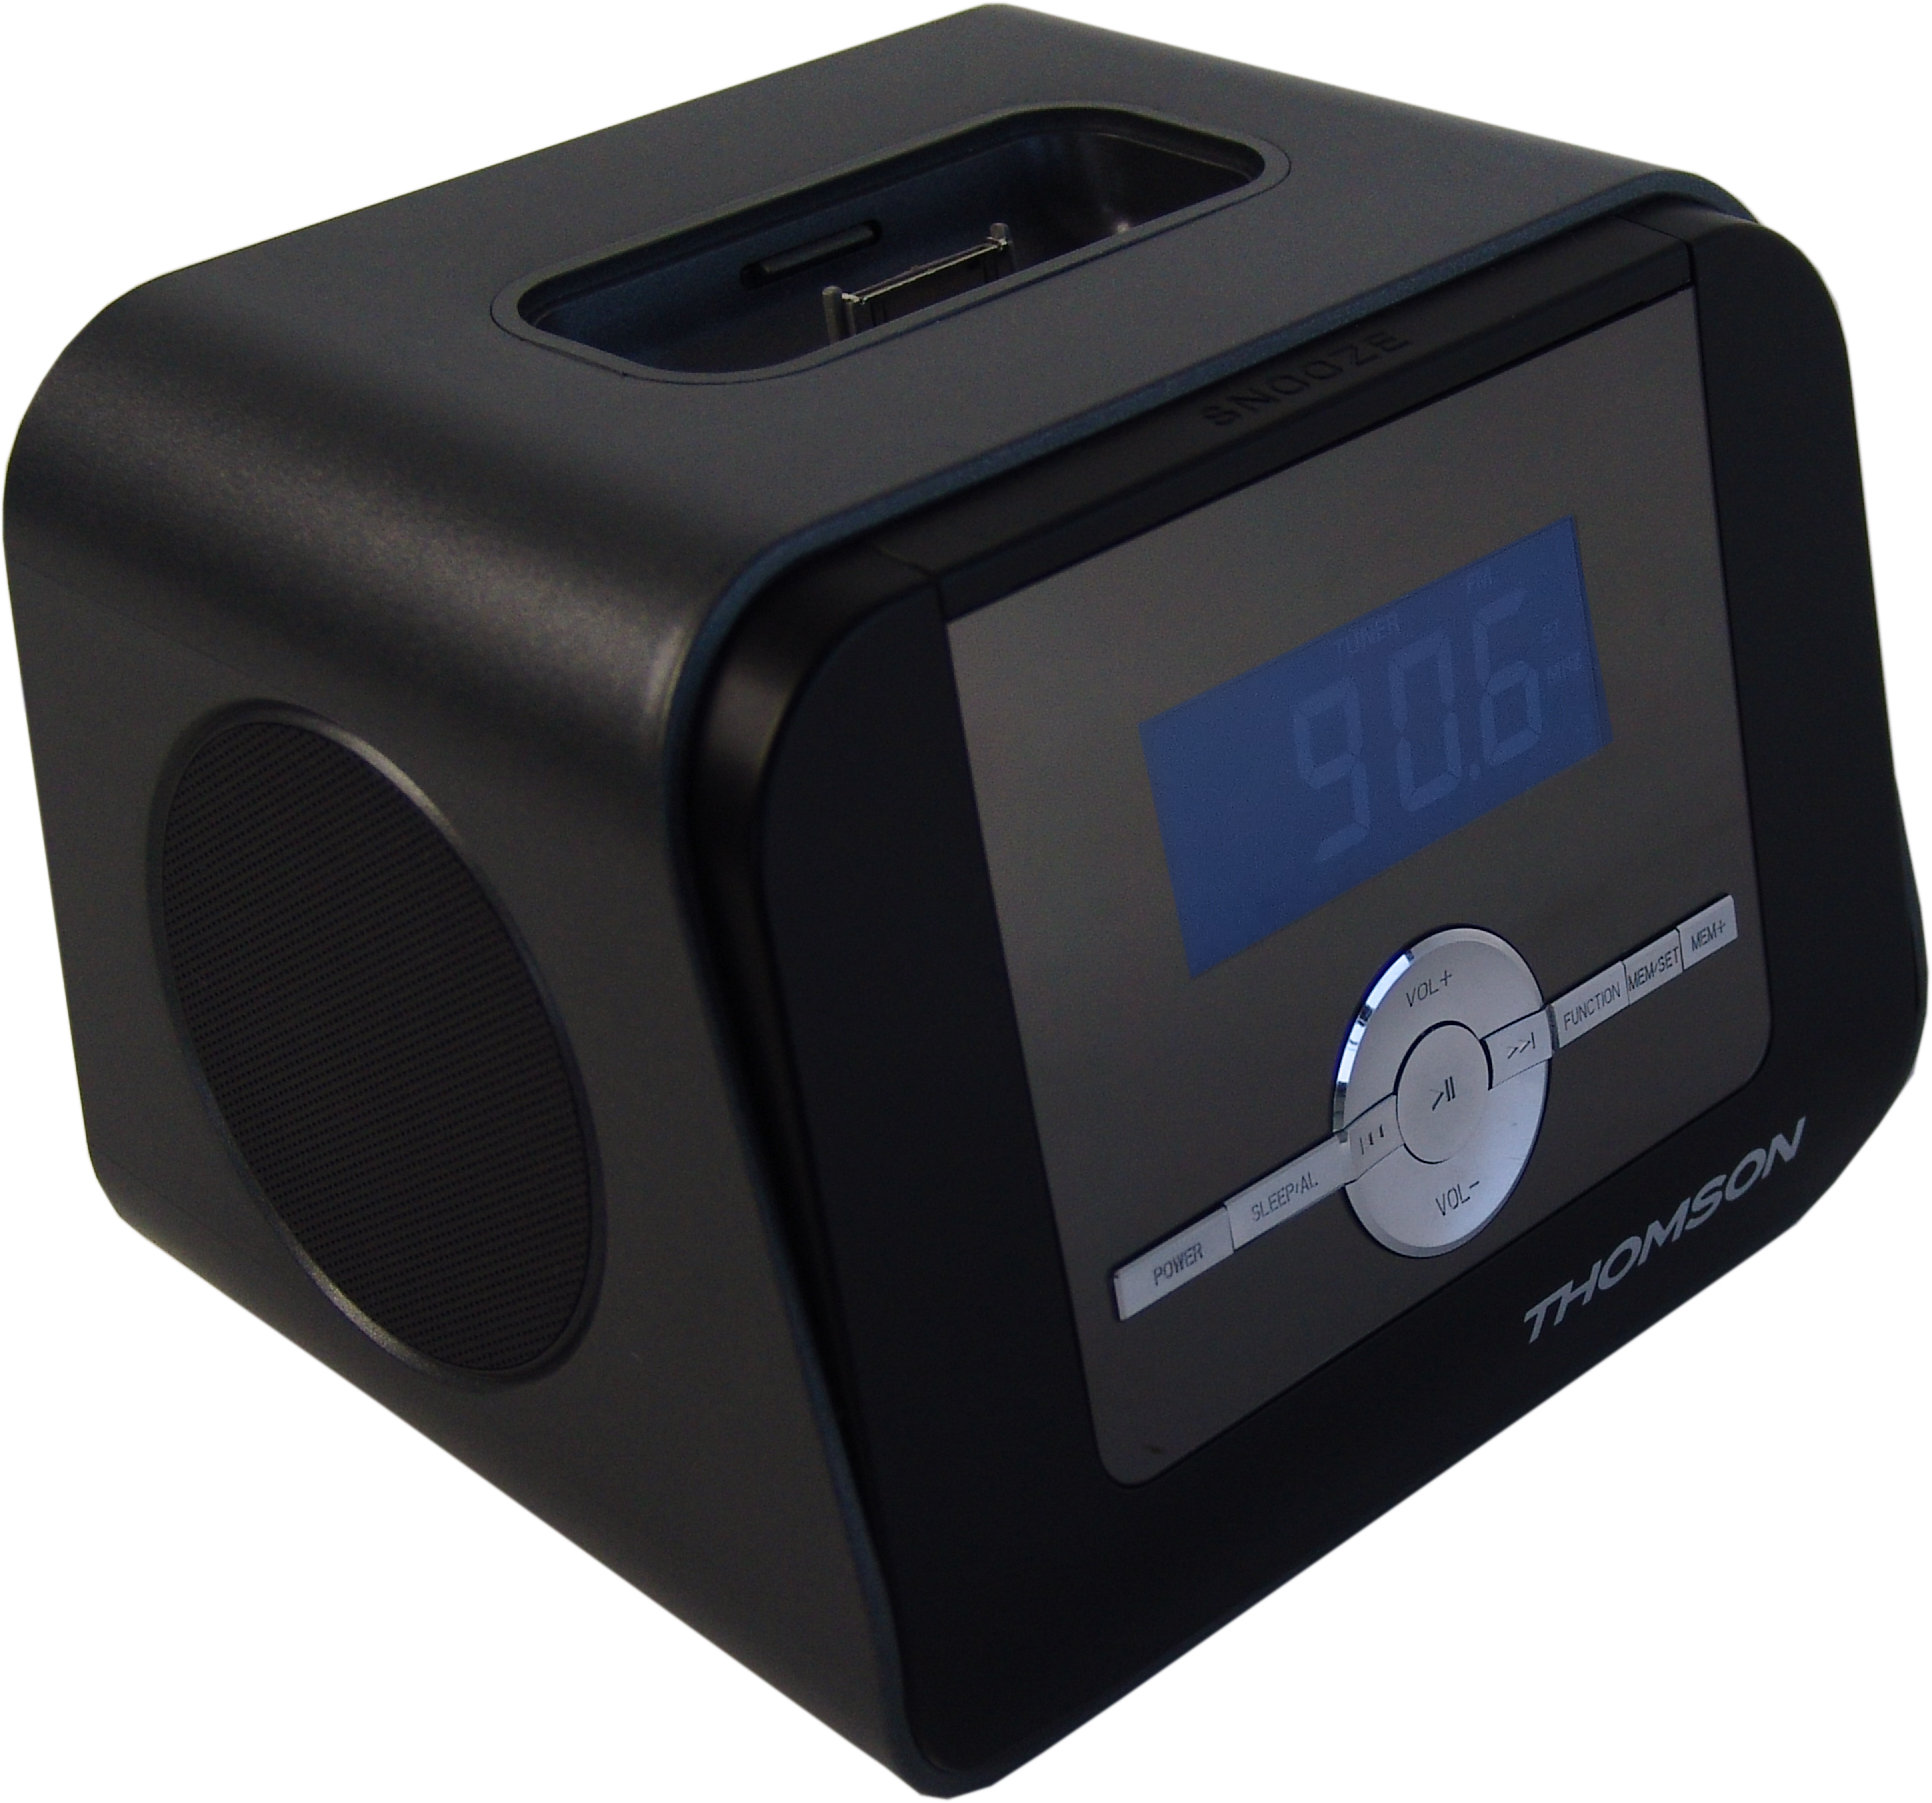 thomson cr308i uhrenadio radiowecker ipod iphone docking. Black Bedroom Furniture Sets. Home Design Ideas